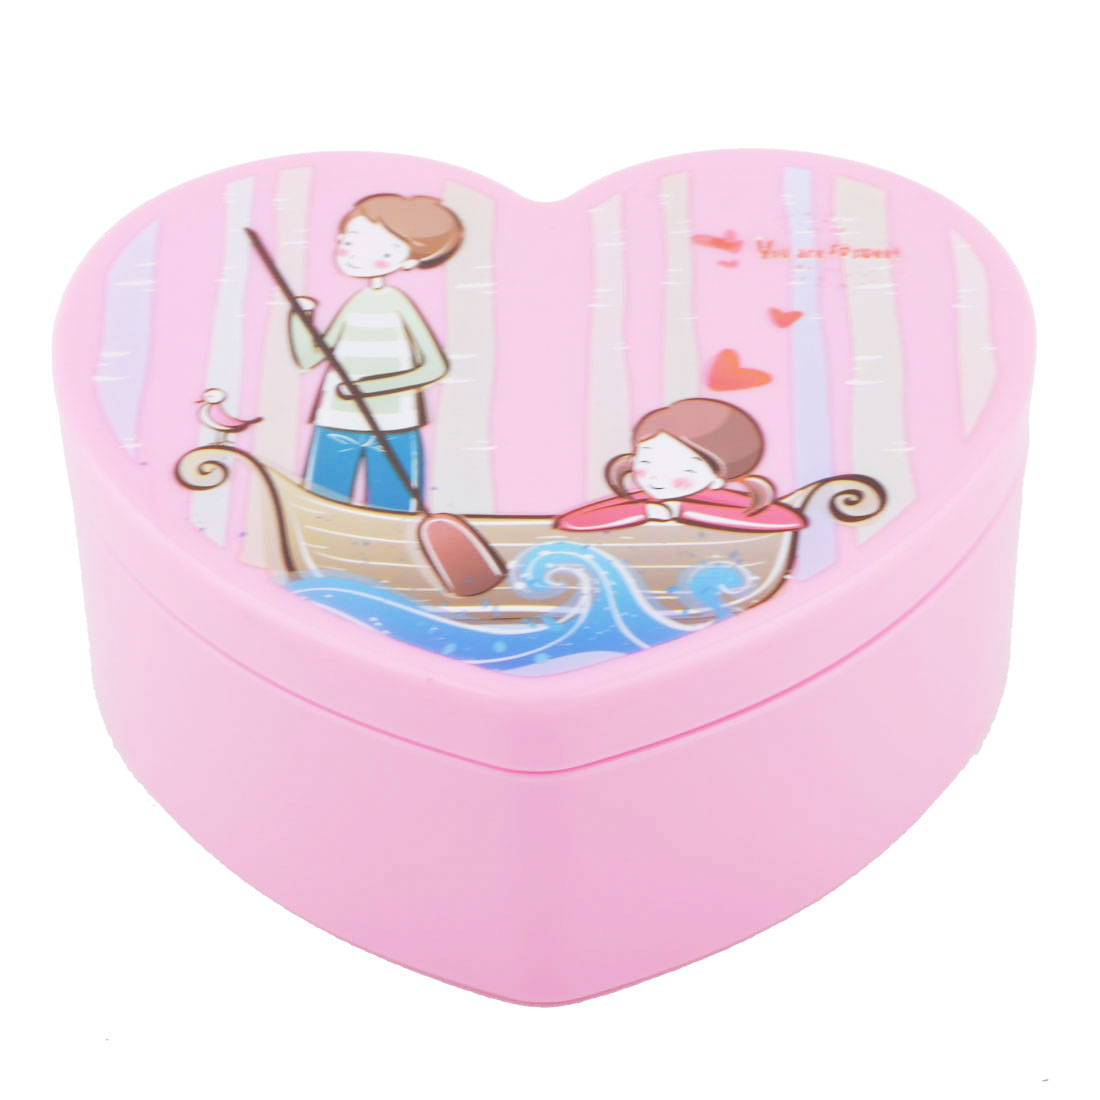 Lady Plastic Heart Shape Cosmetic Organizer Makeup Jewelry Storage Box Case Pink